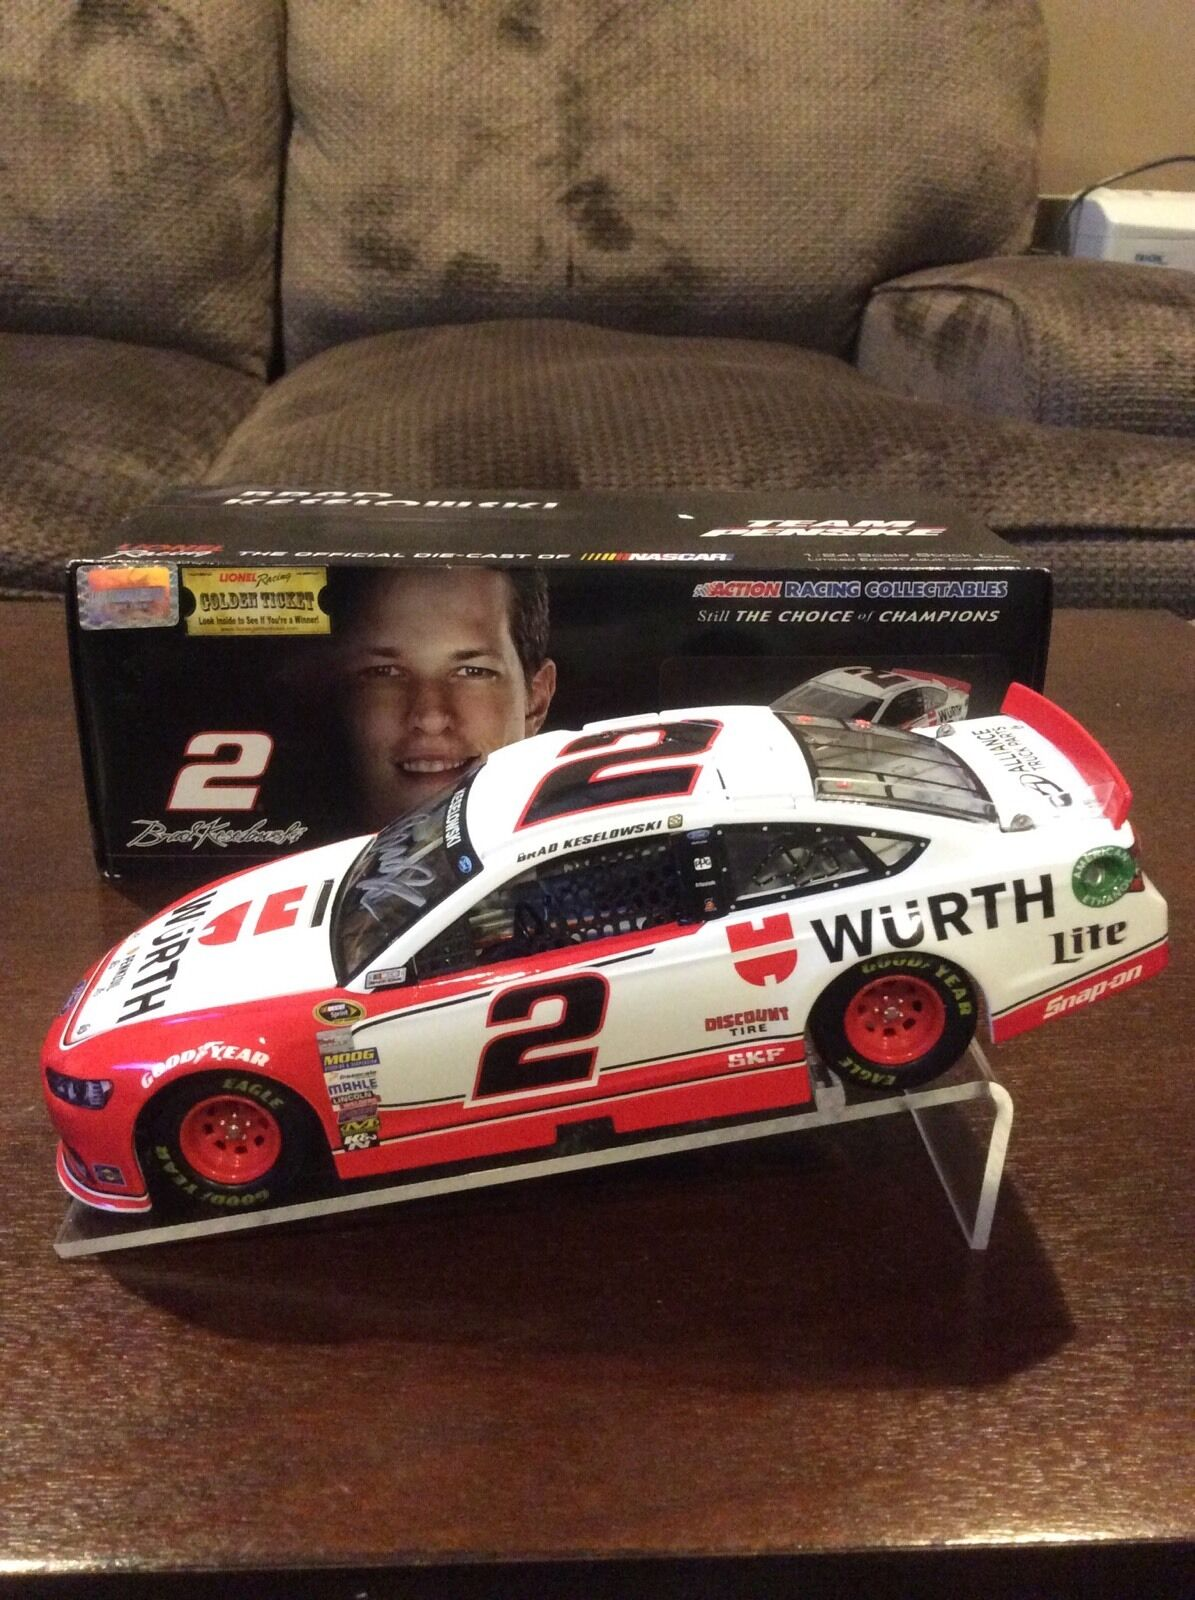 2014 BRAD KESELOWSKI WURTH HAND TOOLS AUTOGRAPHED SIGNED 1 24 ACTION